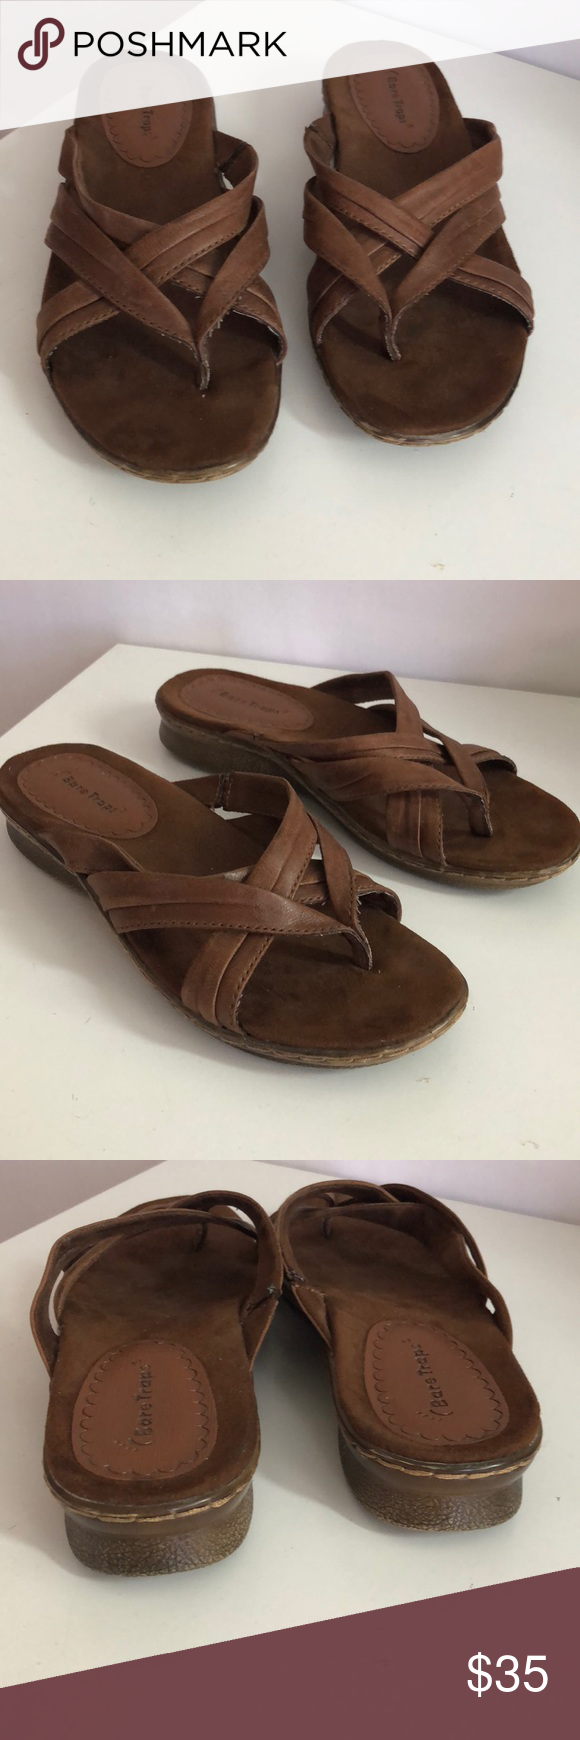 5a616fe24d13 Bare Traps Leather sandals Pre-owned like new bear traps Sandals brown  Leather size 8 please ask if you have any additional questions BareTraps  Shoes ...